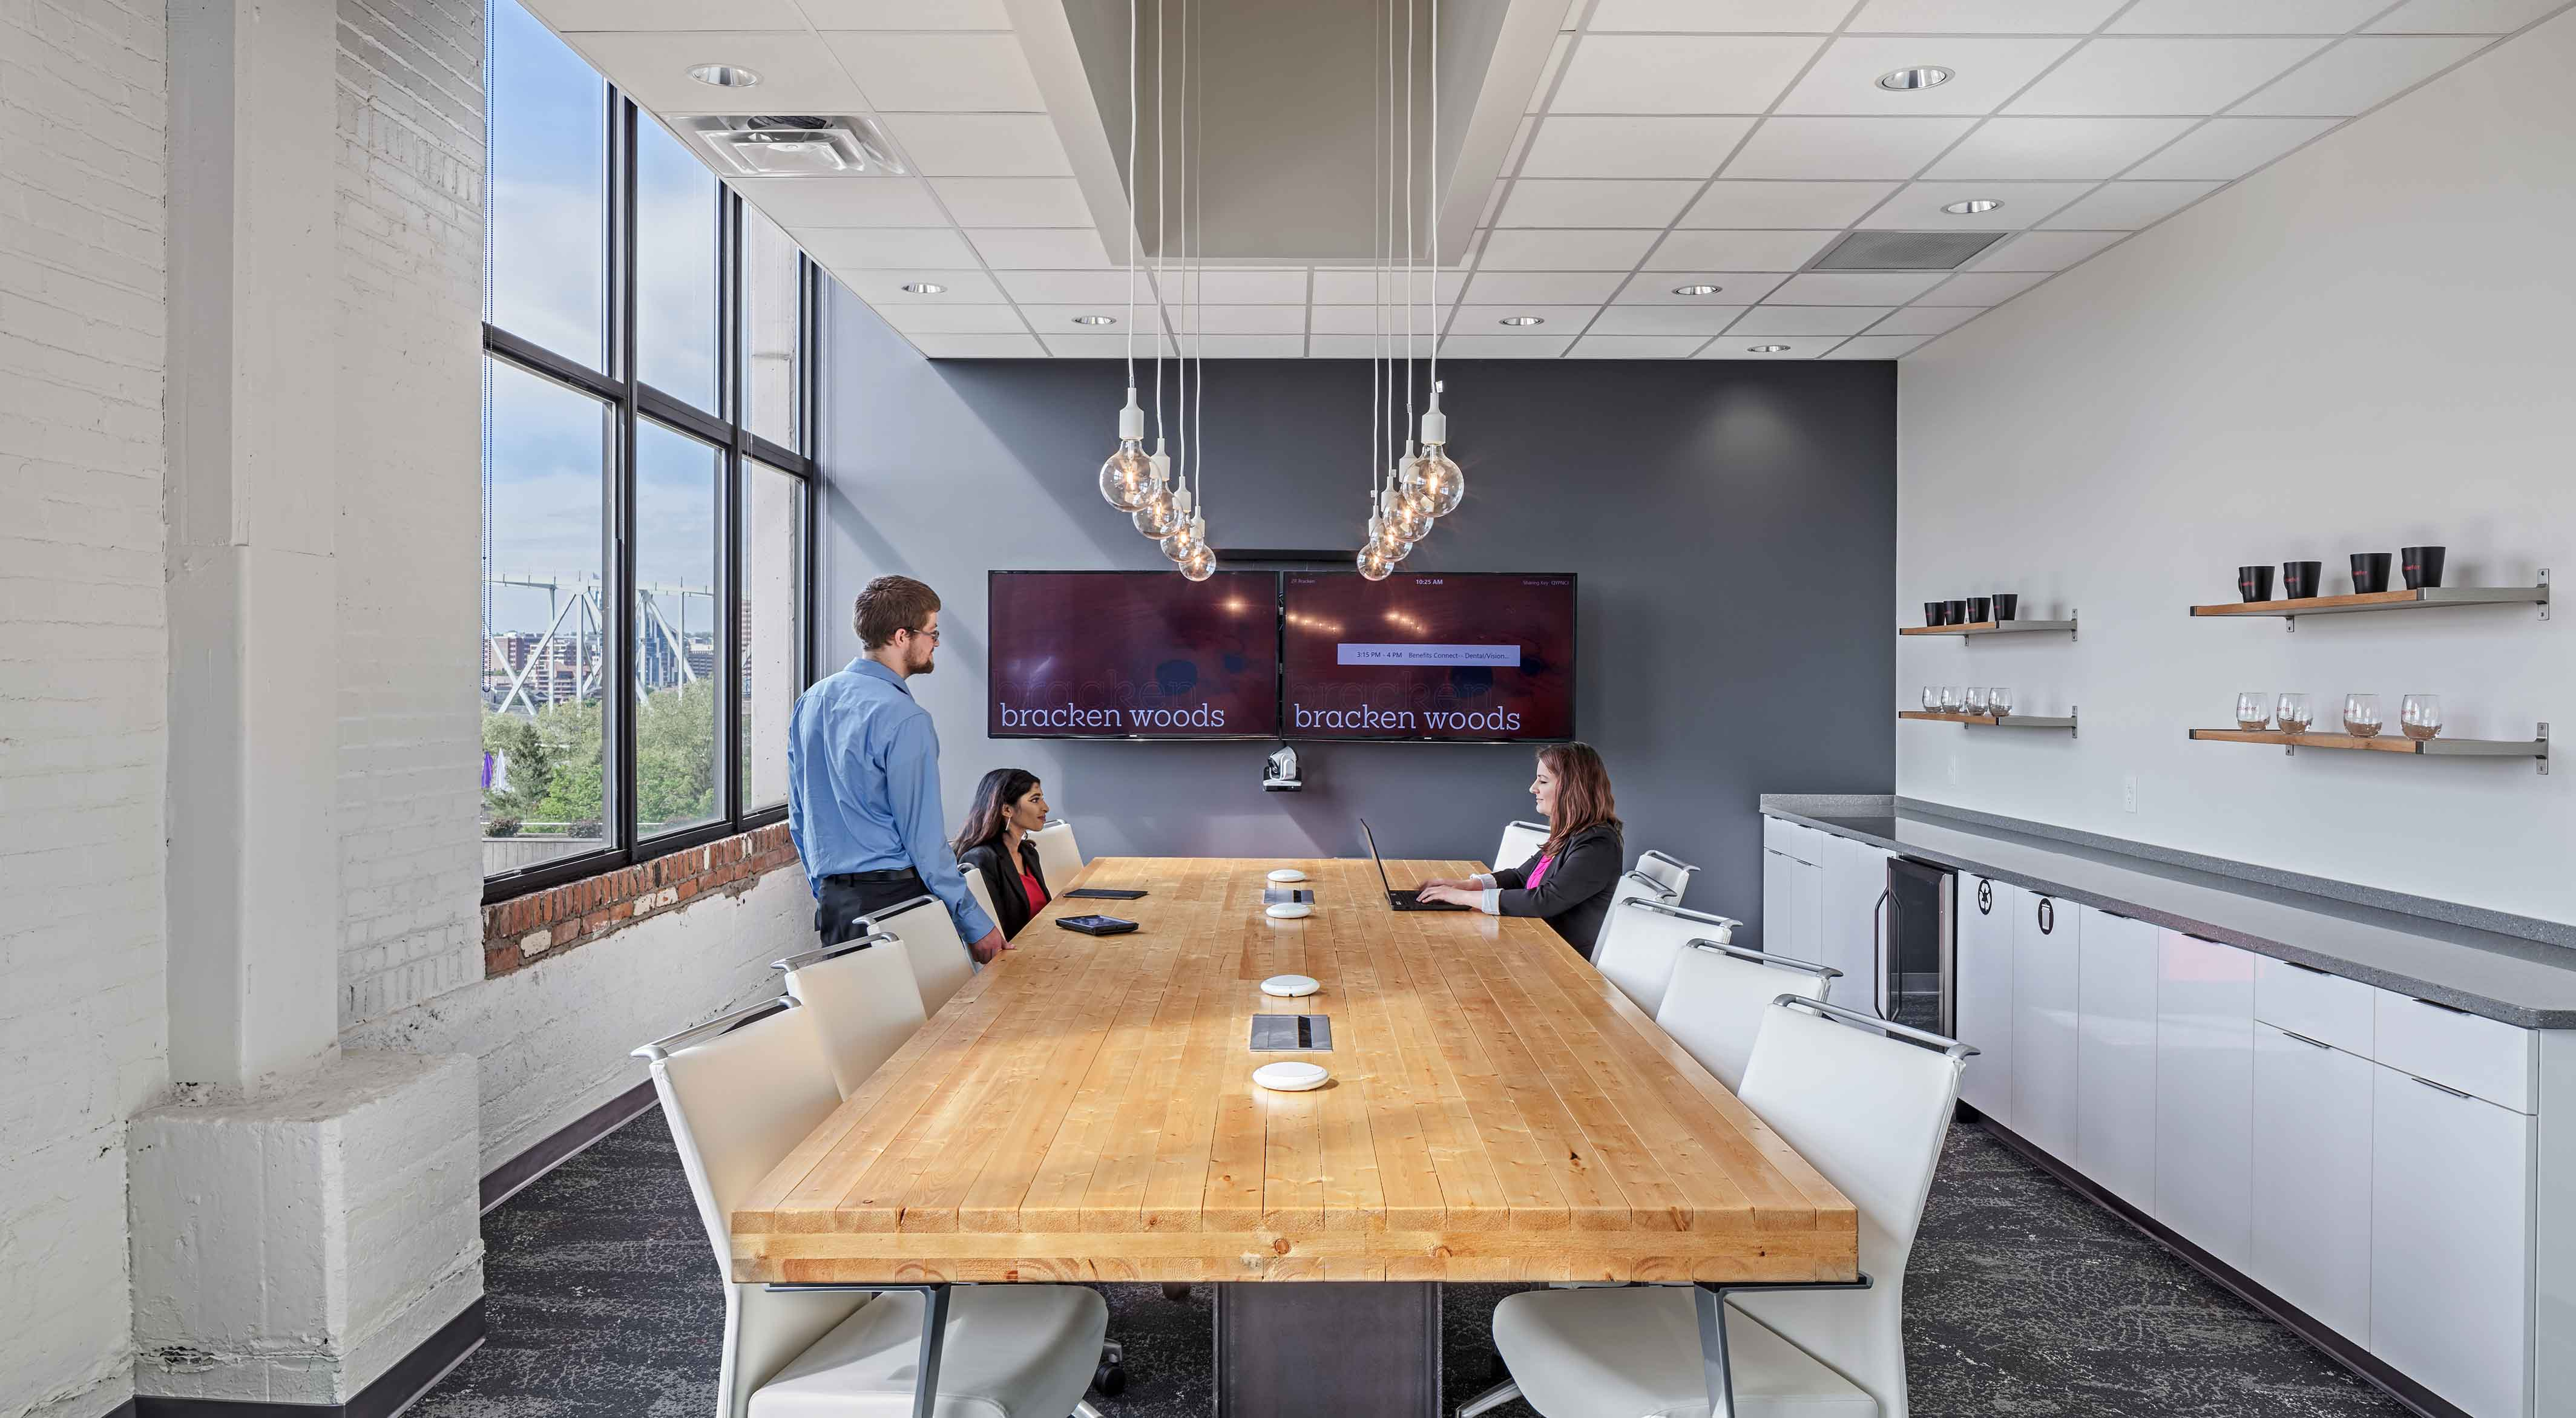 Employees gather in a conference room around a handmade table